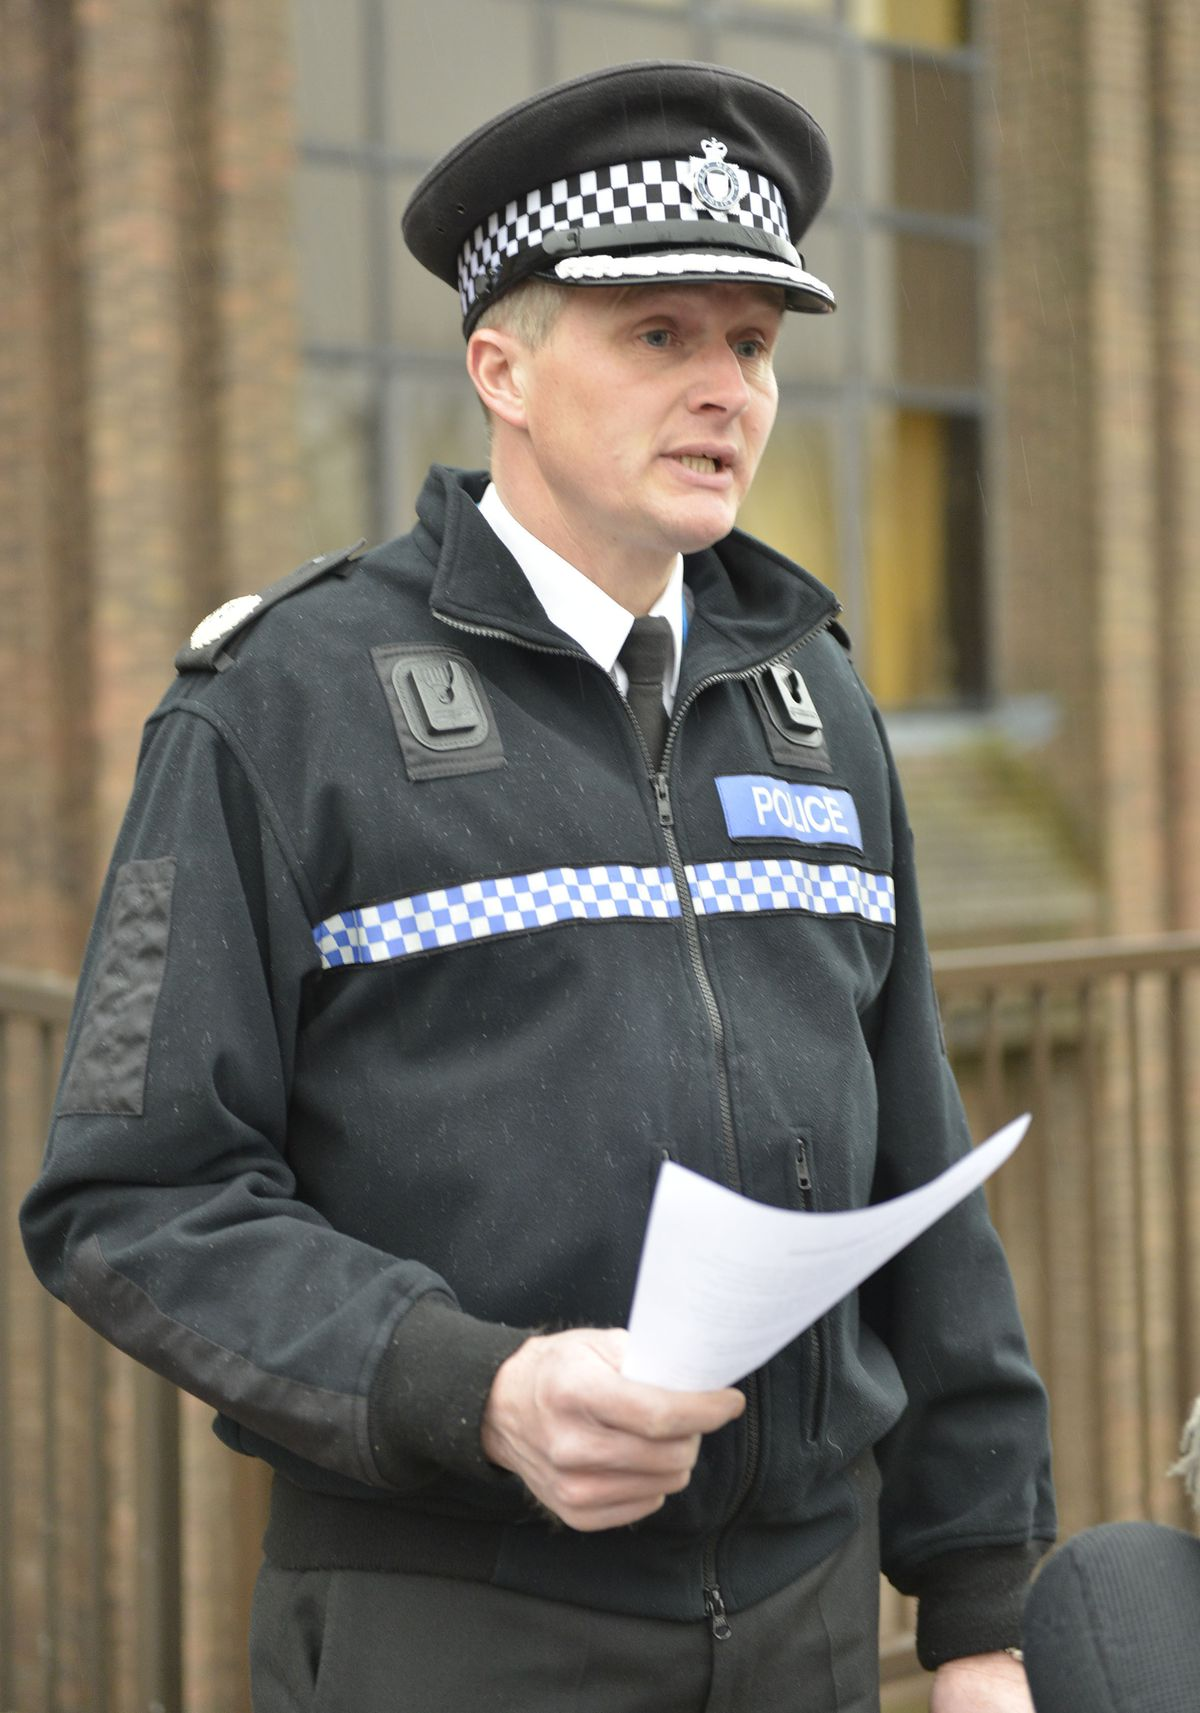 Assistant Chief Constable Martin Evans